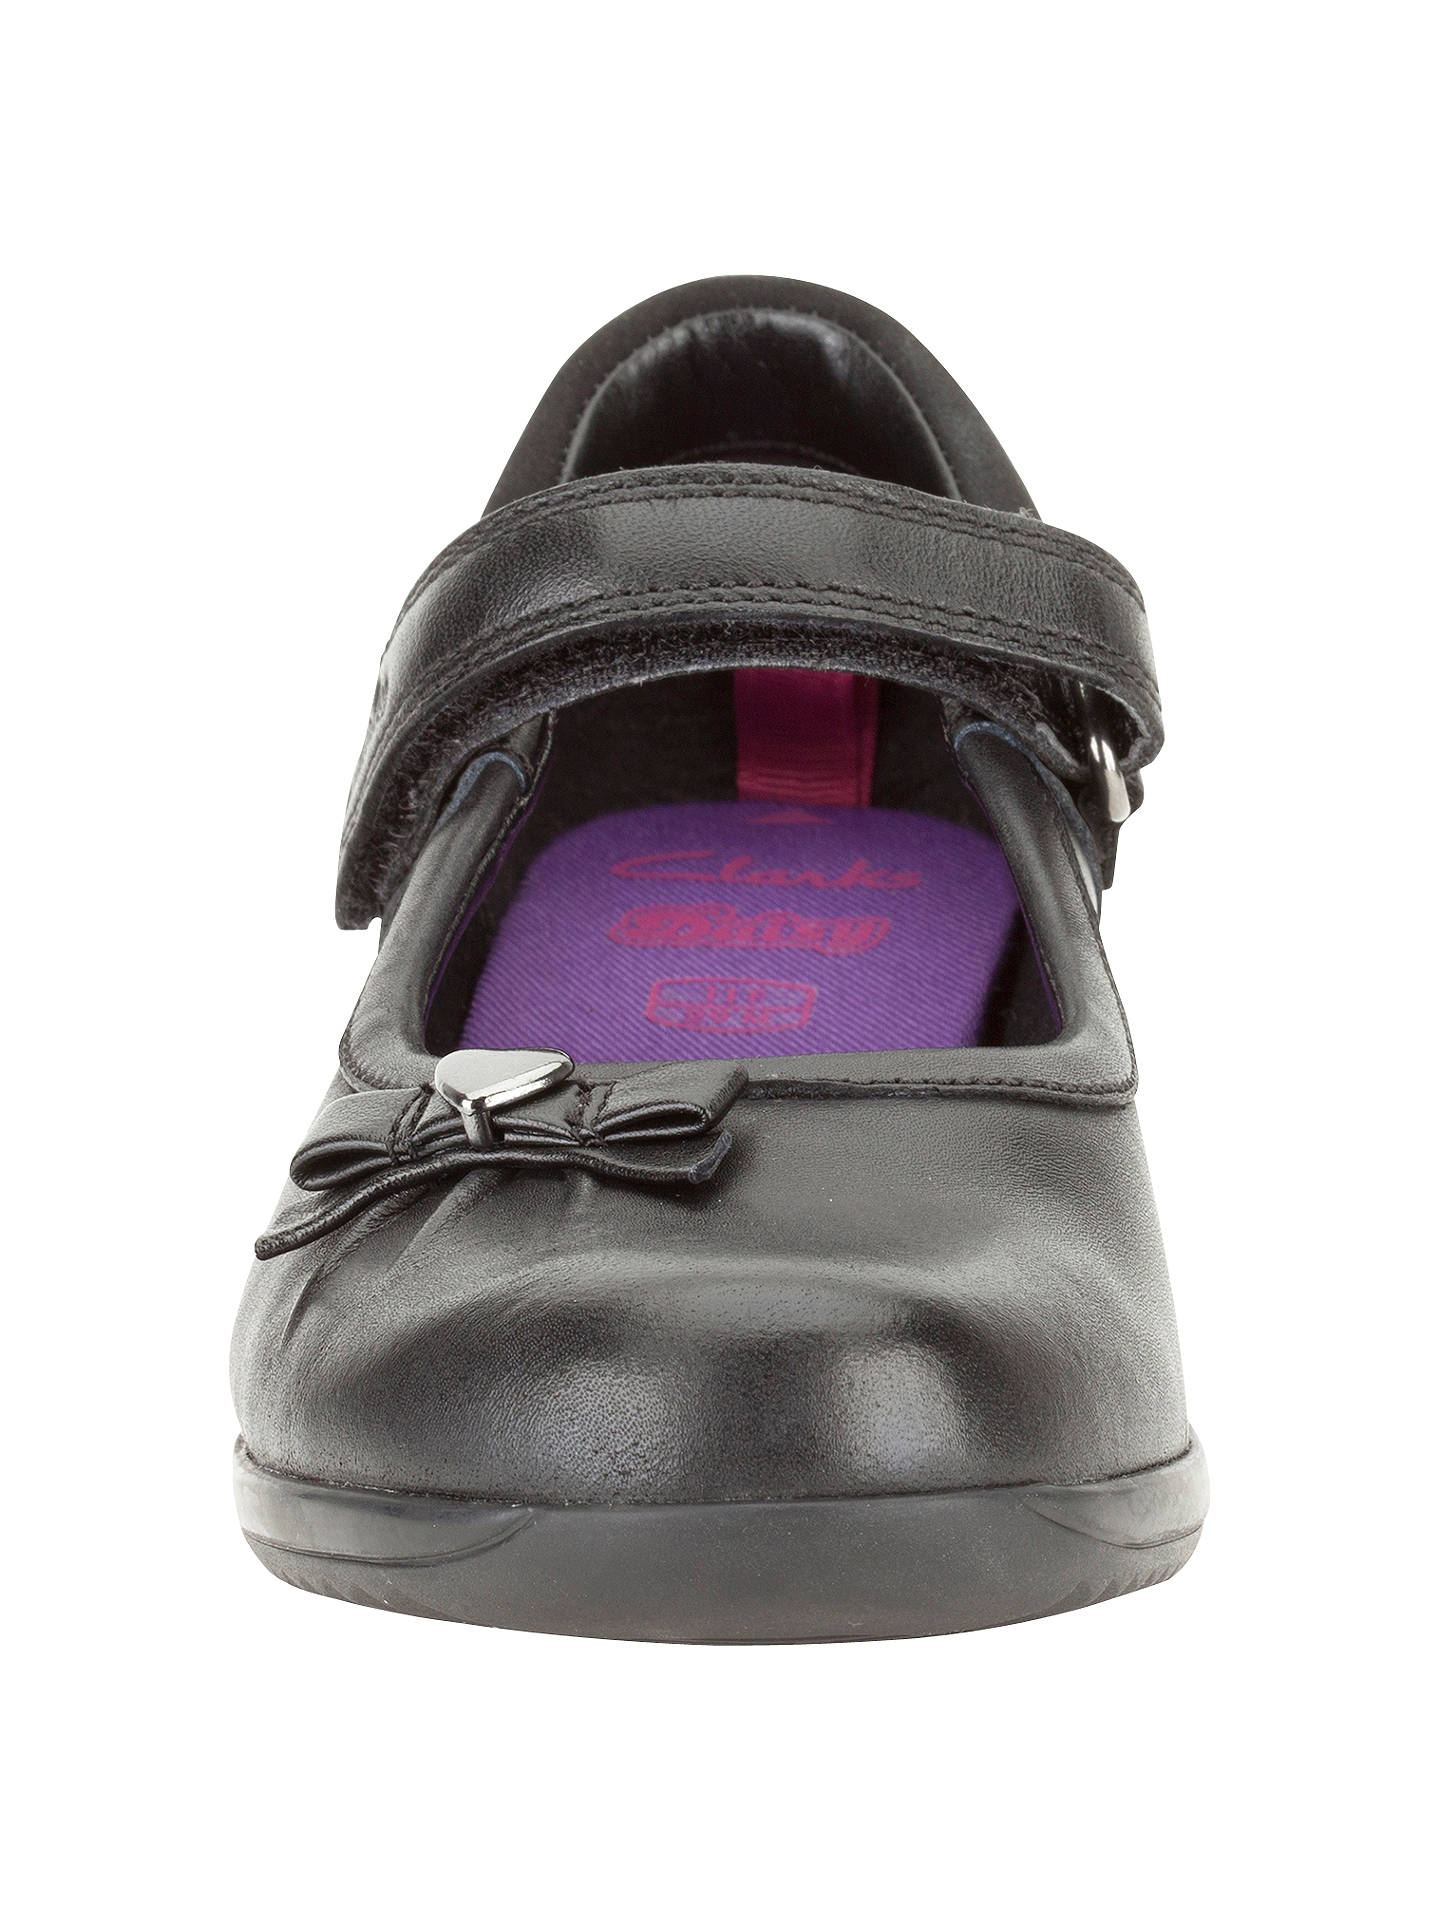 d702cd50f1a98 ... Buy Clarks Daisy Gleam Leather Mary Jane Shoes, Black, 10E Jnr Online  at johnlewis ...